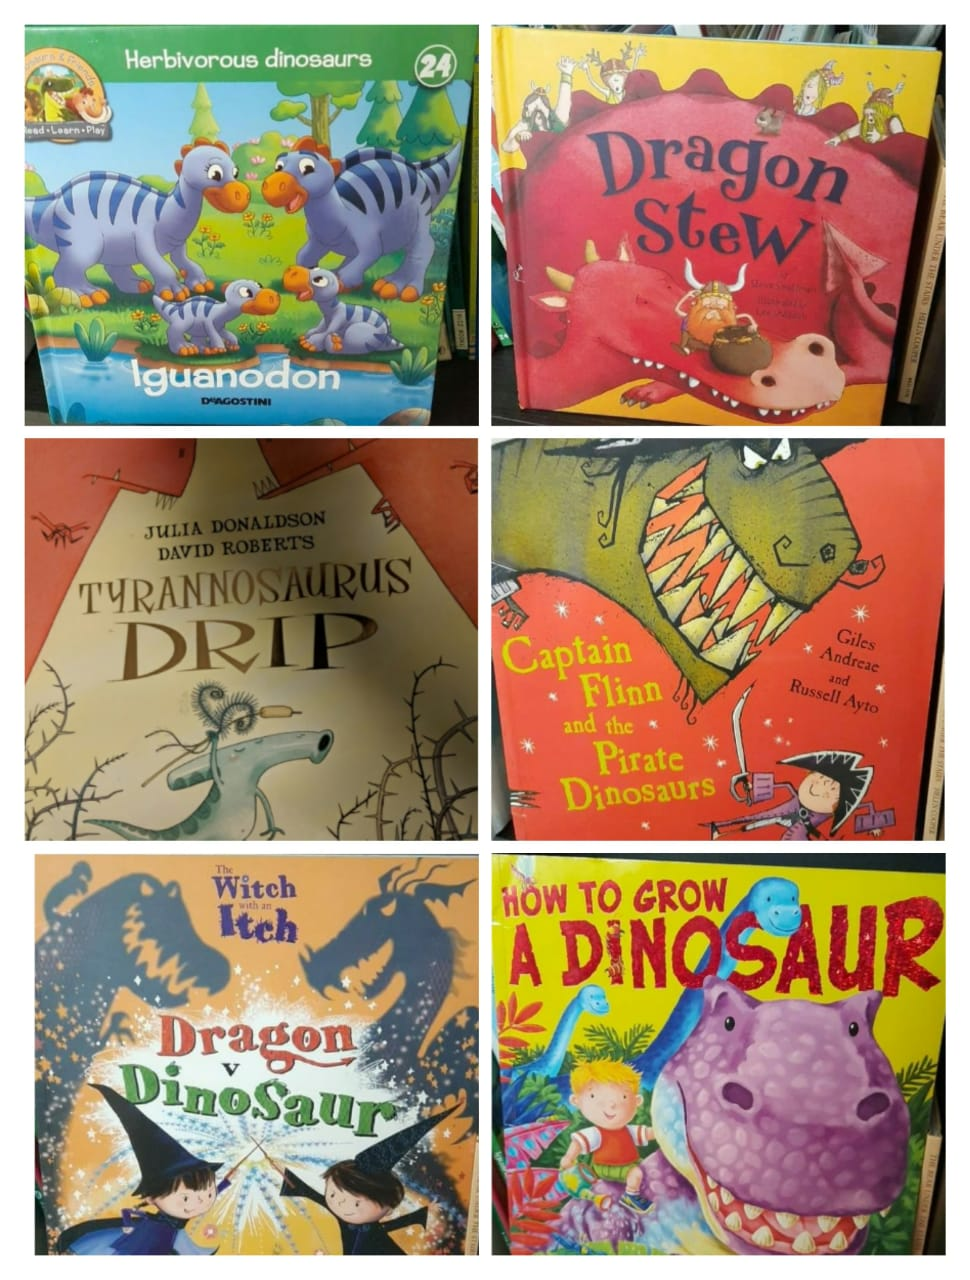 40 Dinosaur Books for your Little Dino: 1-8 years